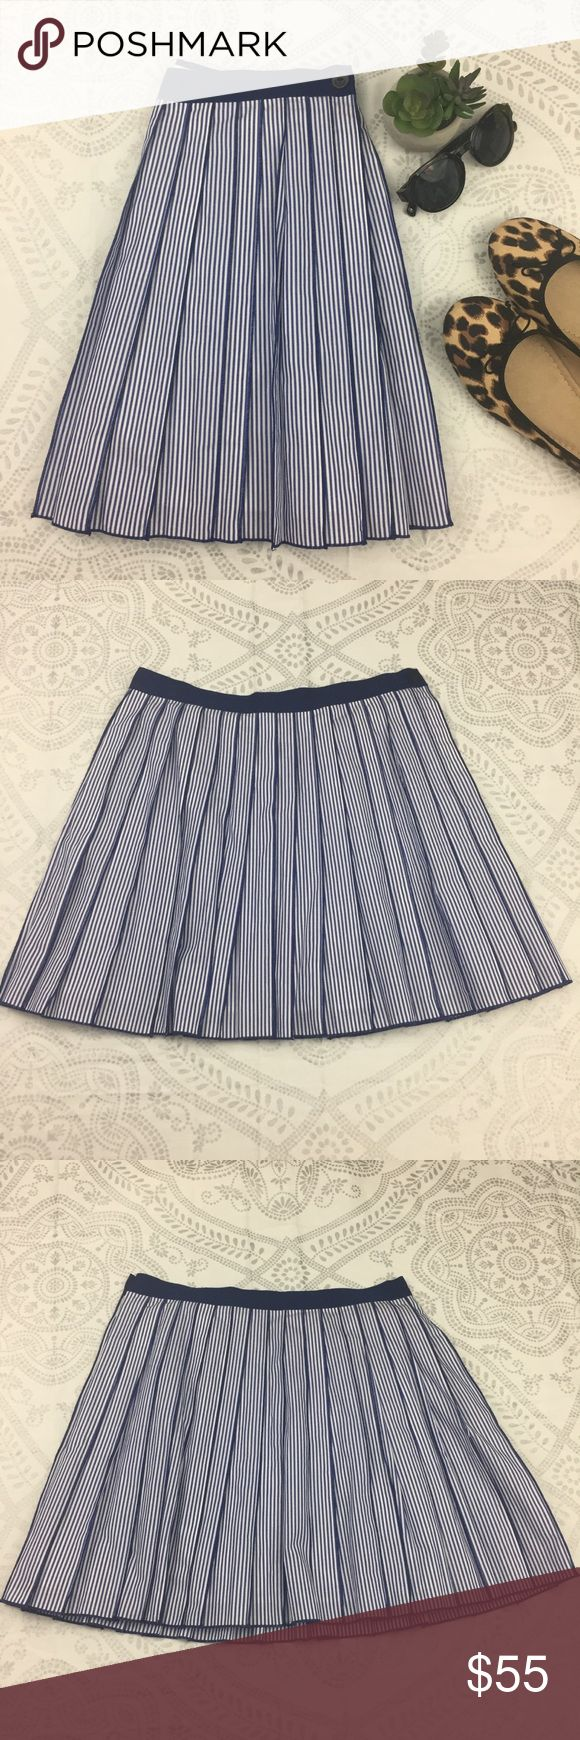 """NWT Vineyard Vines Stripe Pleated Skirt, Blue, 4 NWT Poplin Stripe Pleated Skirt, Spinnaker Blue, 4 Preppy striped poplin meets flattering, pleated A-line silhouette in a women's skirt that's ready to dress up or down. 100% cotton. Banded waist. Lined. Pockets. Side zip with visible navy anchor accented button. Washable.  Measurements: Flat Lay Waist: 15.5  Waist to hem: 17"""" Vineyard Vines Skirts"""